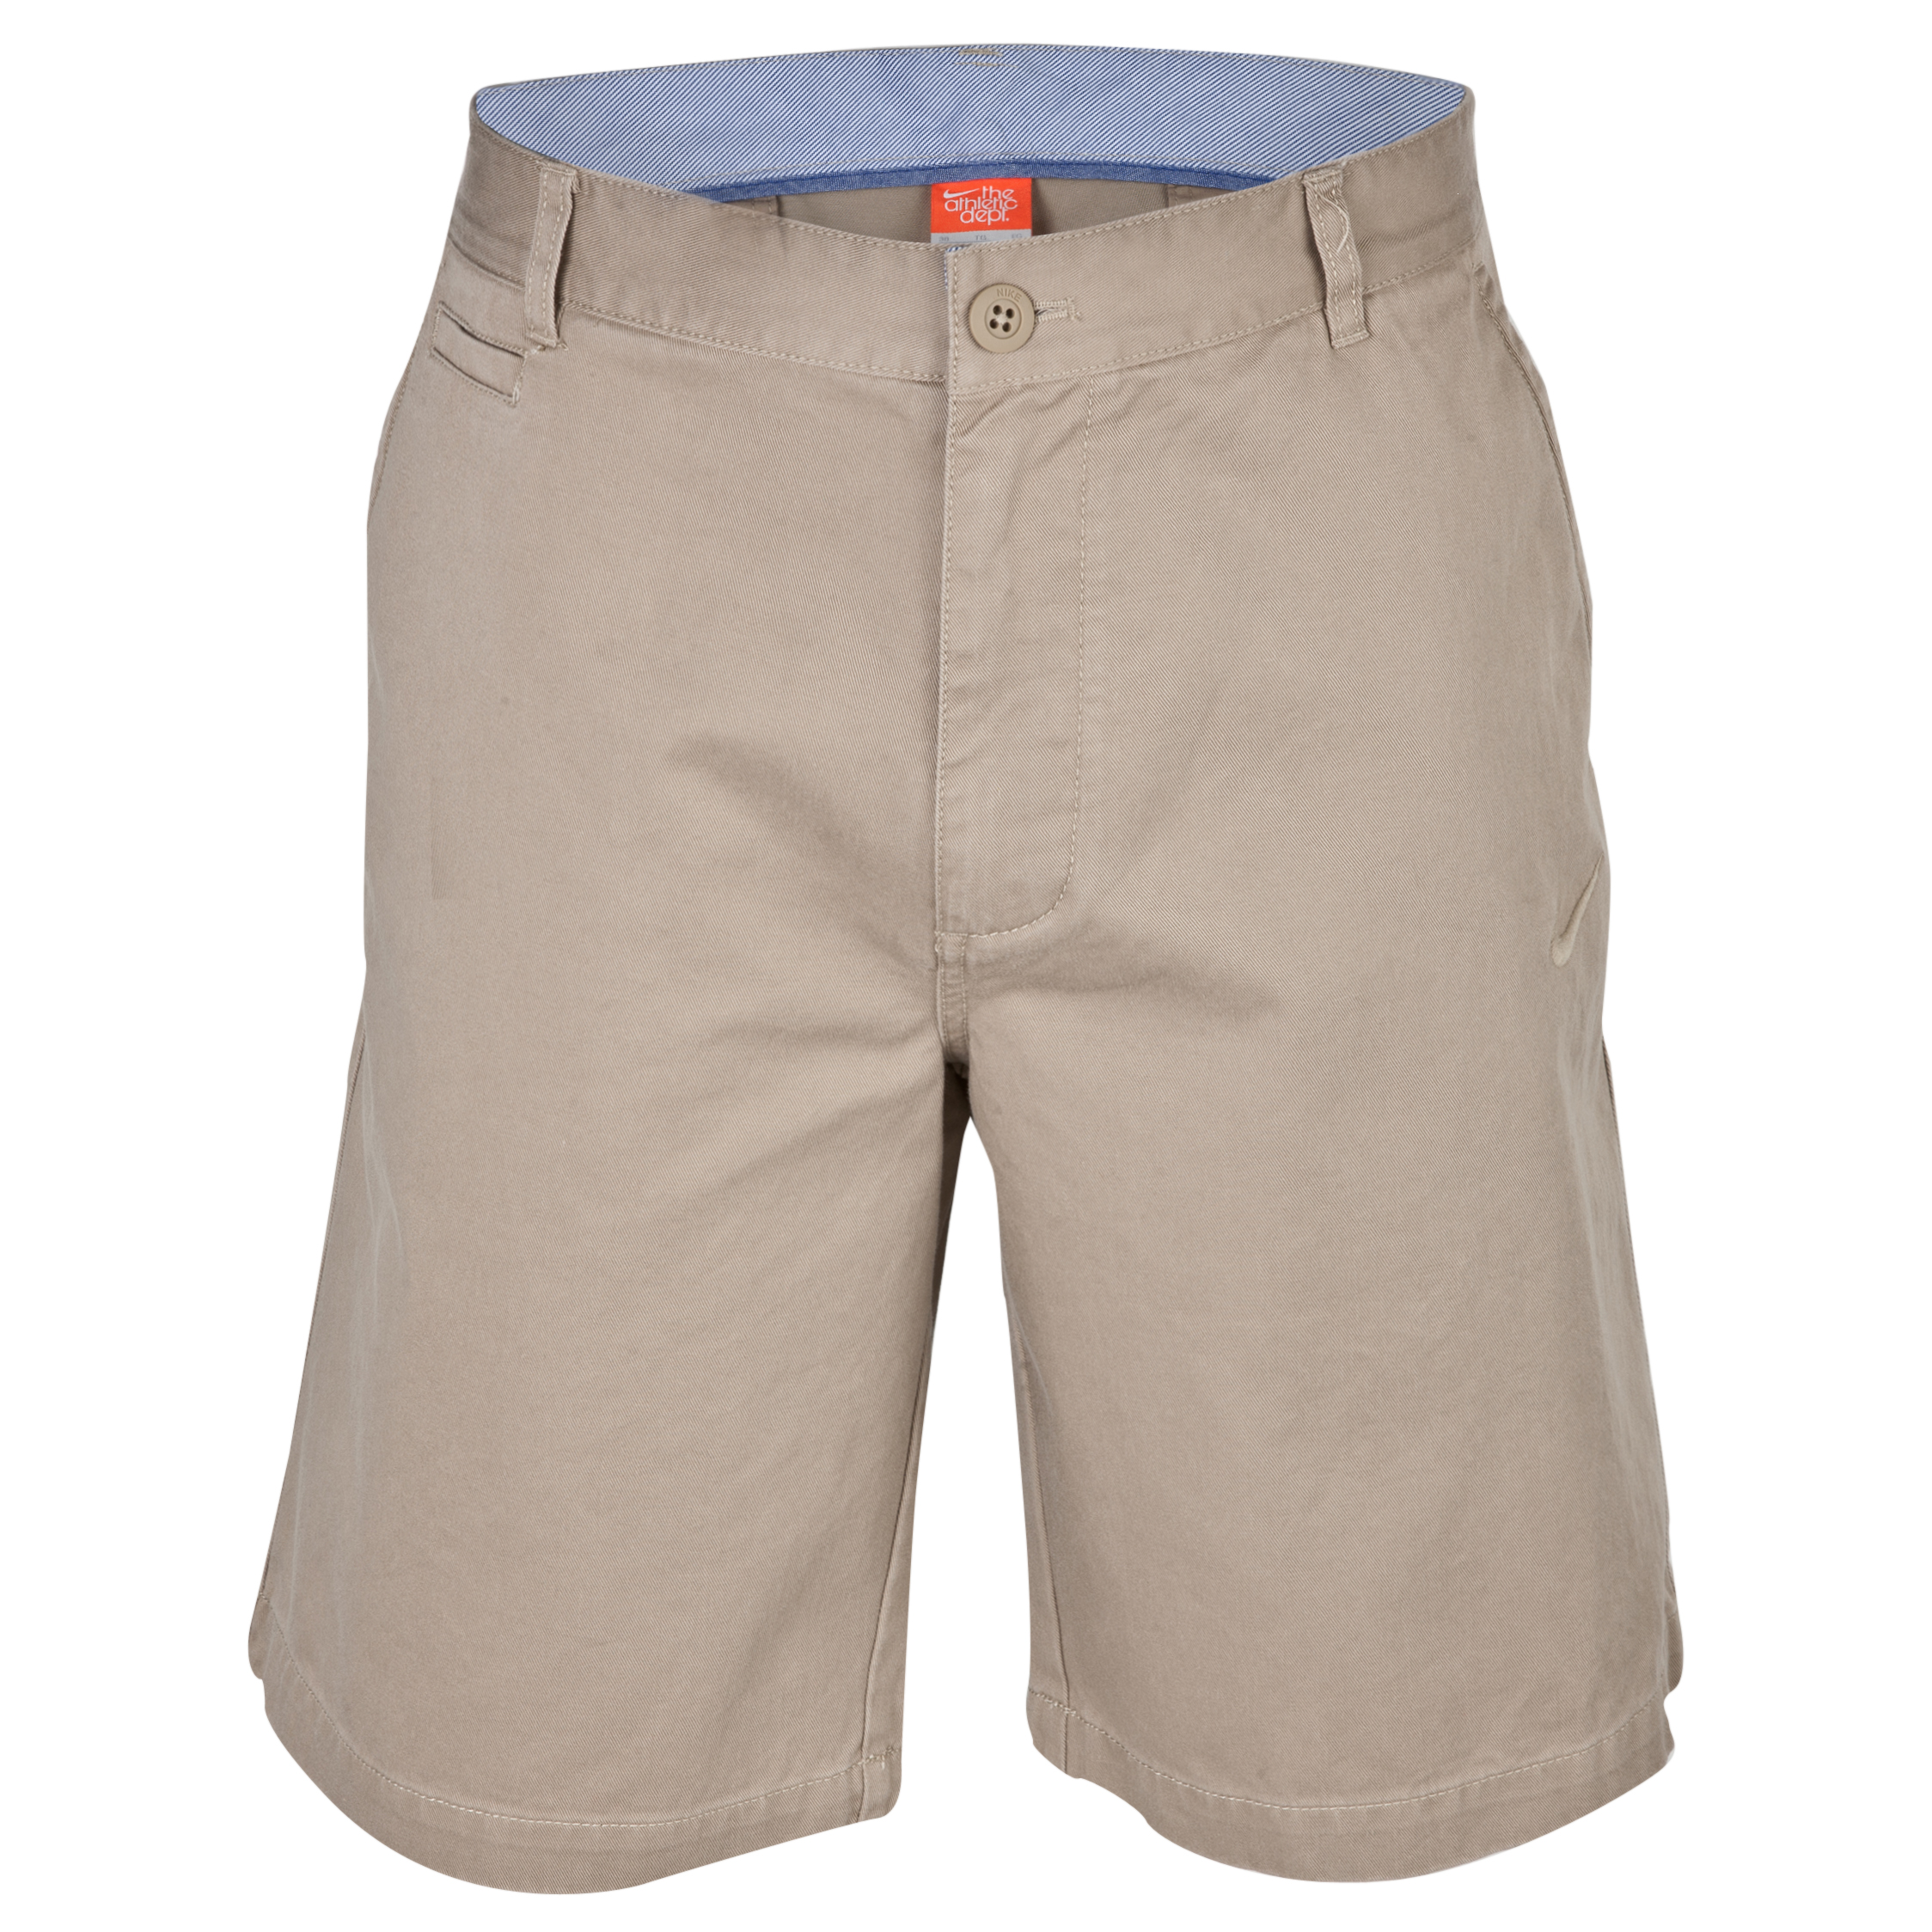 Nike Washed Chino Shorts - Khaki/Team Red/Khaki